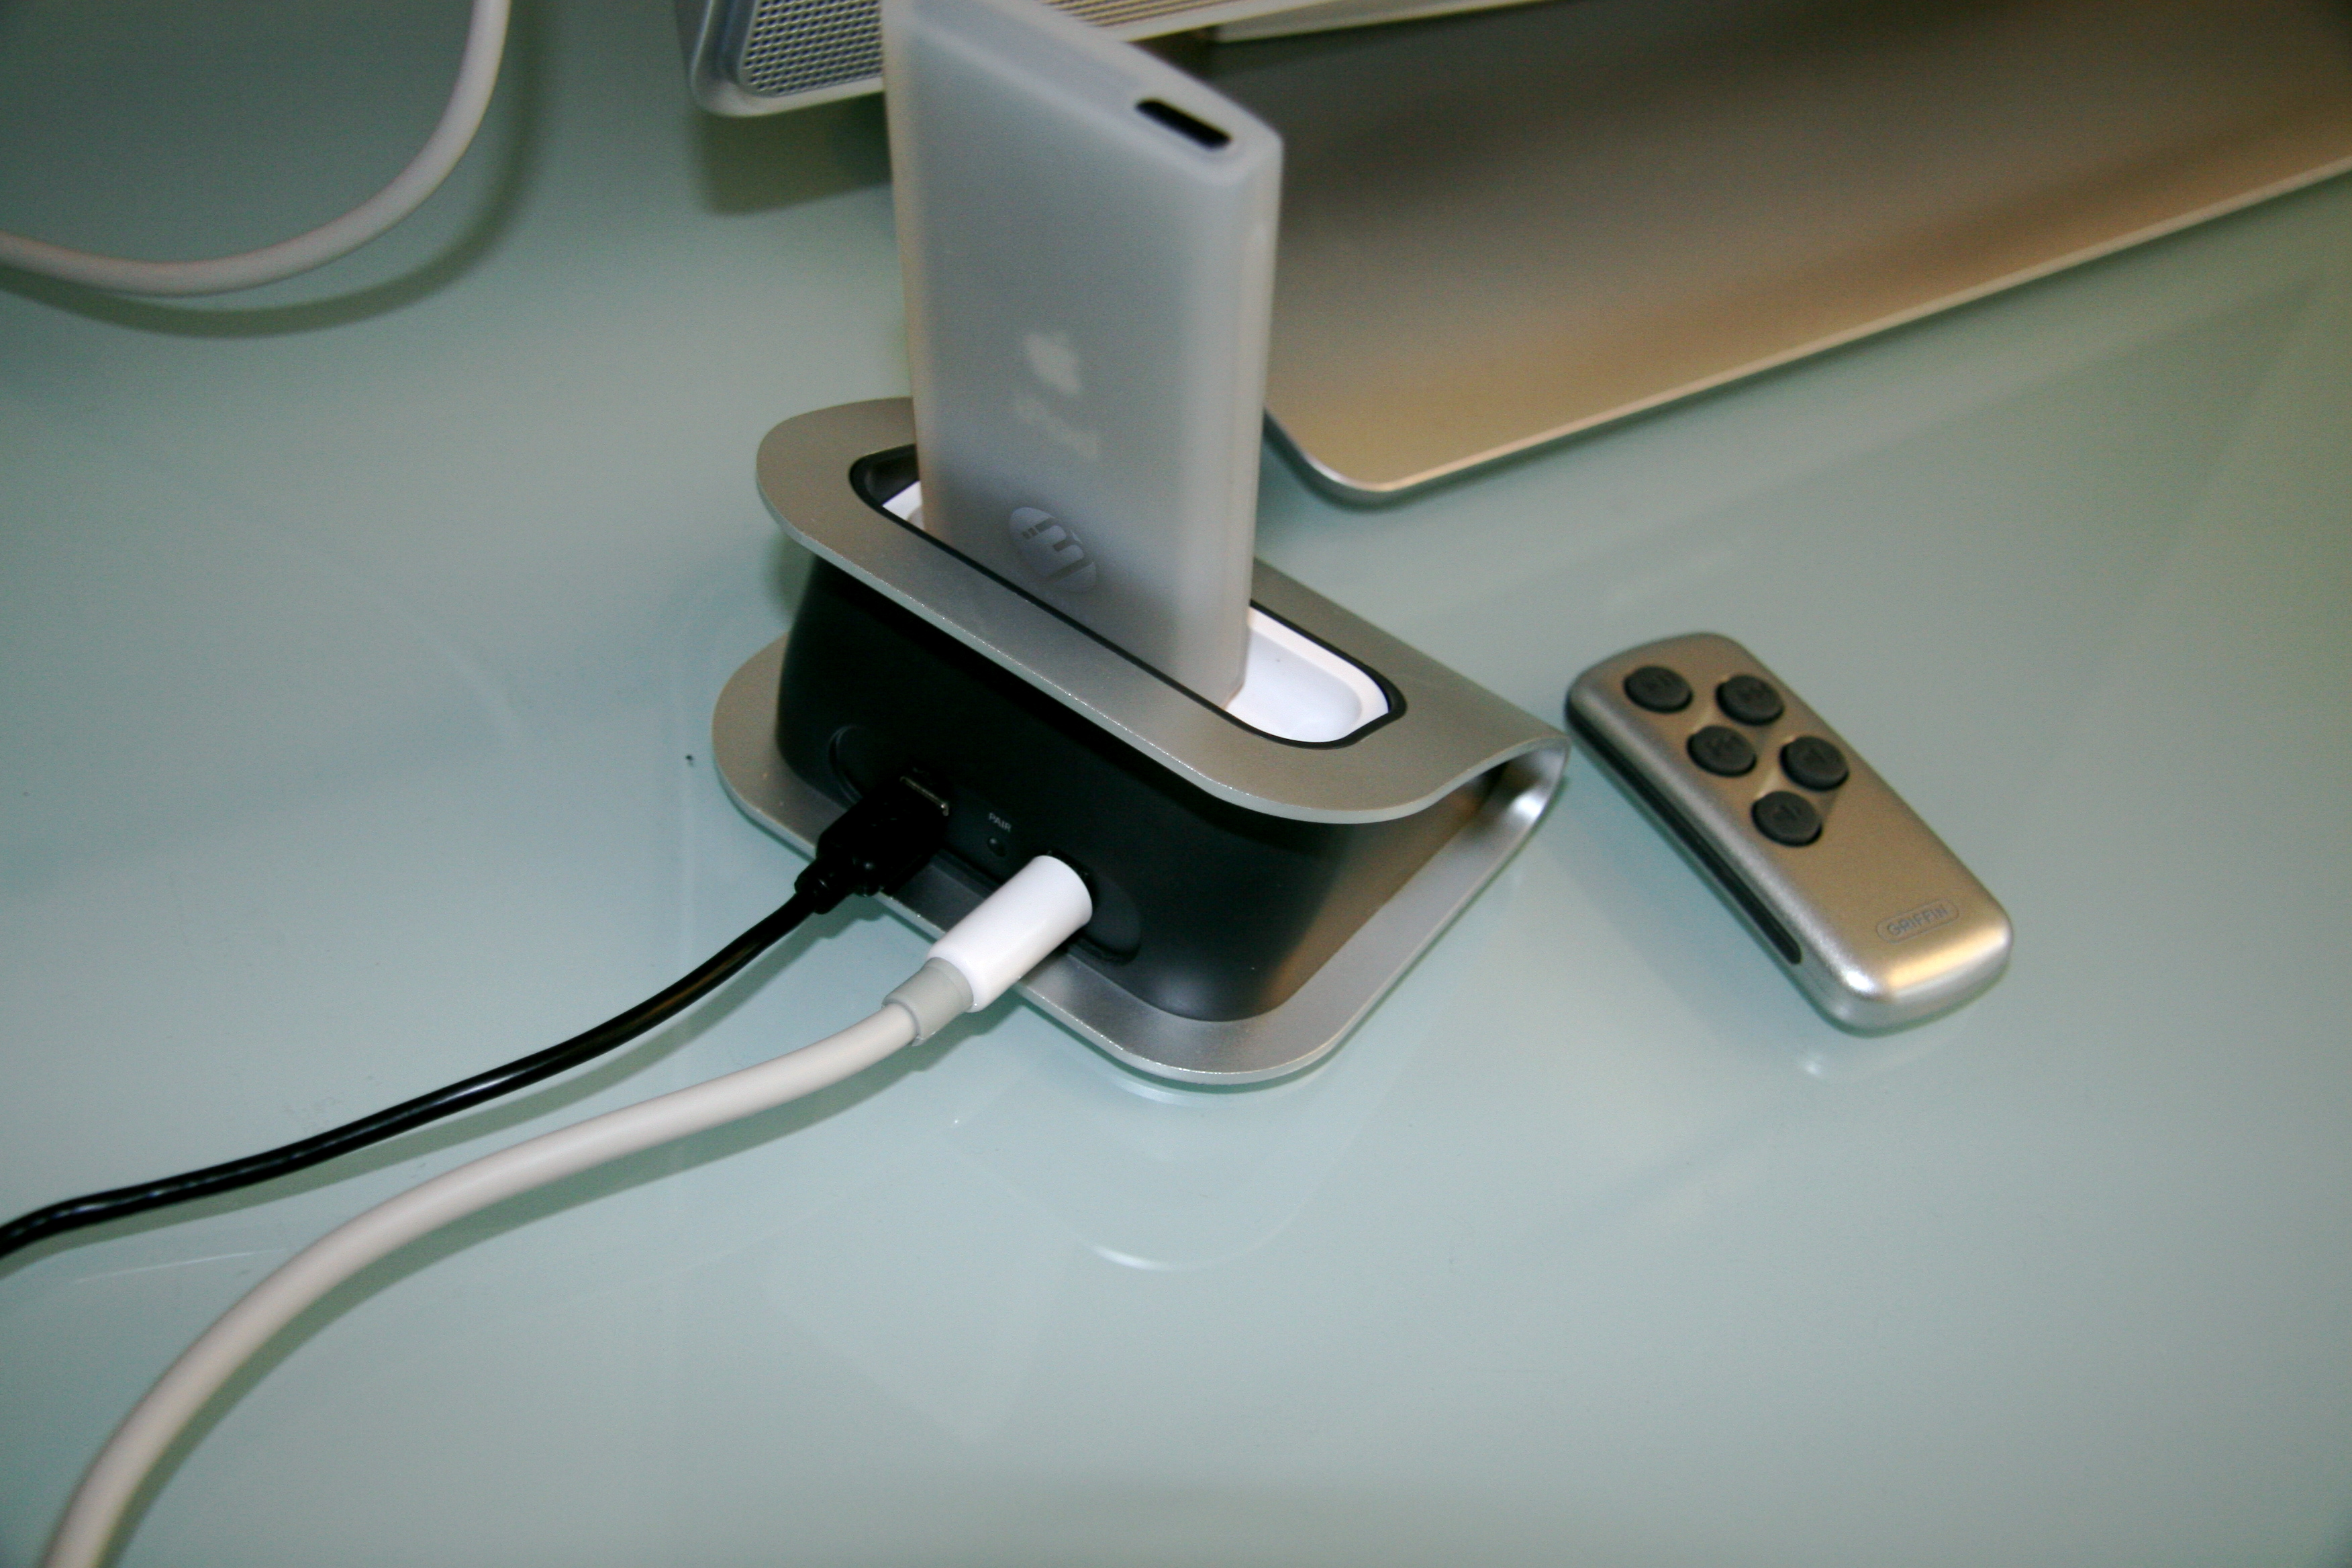 AirDock For iPod - For Your Computer, Stereo or TV